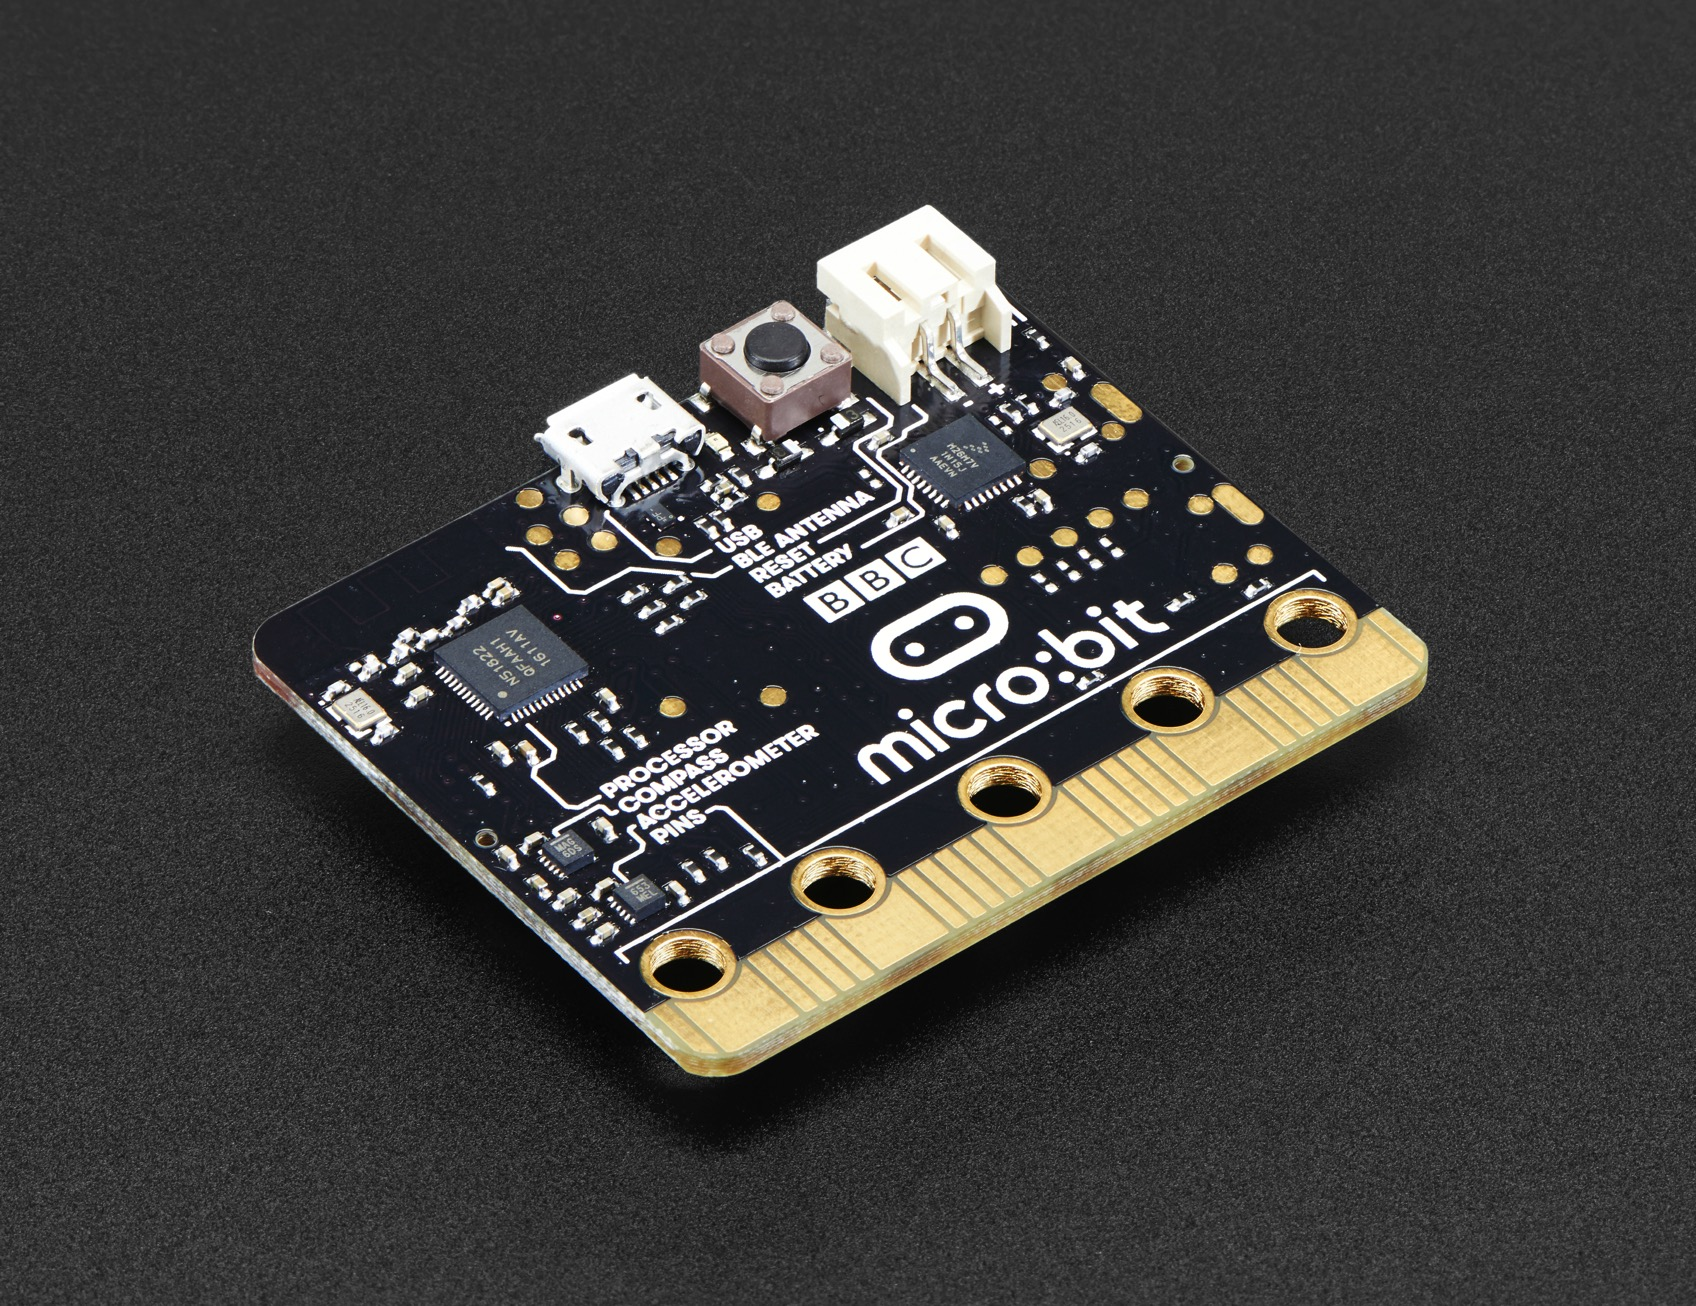 Bbc Micro:bit Nrf51822 Development Board Micro-controller With Motion Detection Compass Led Display And Bluetooth High Quality Electronic Components & Supplies Active Components